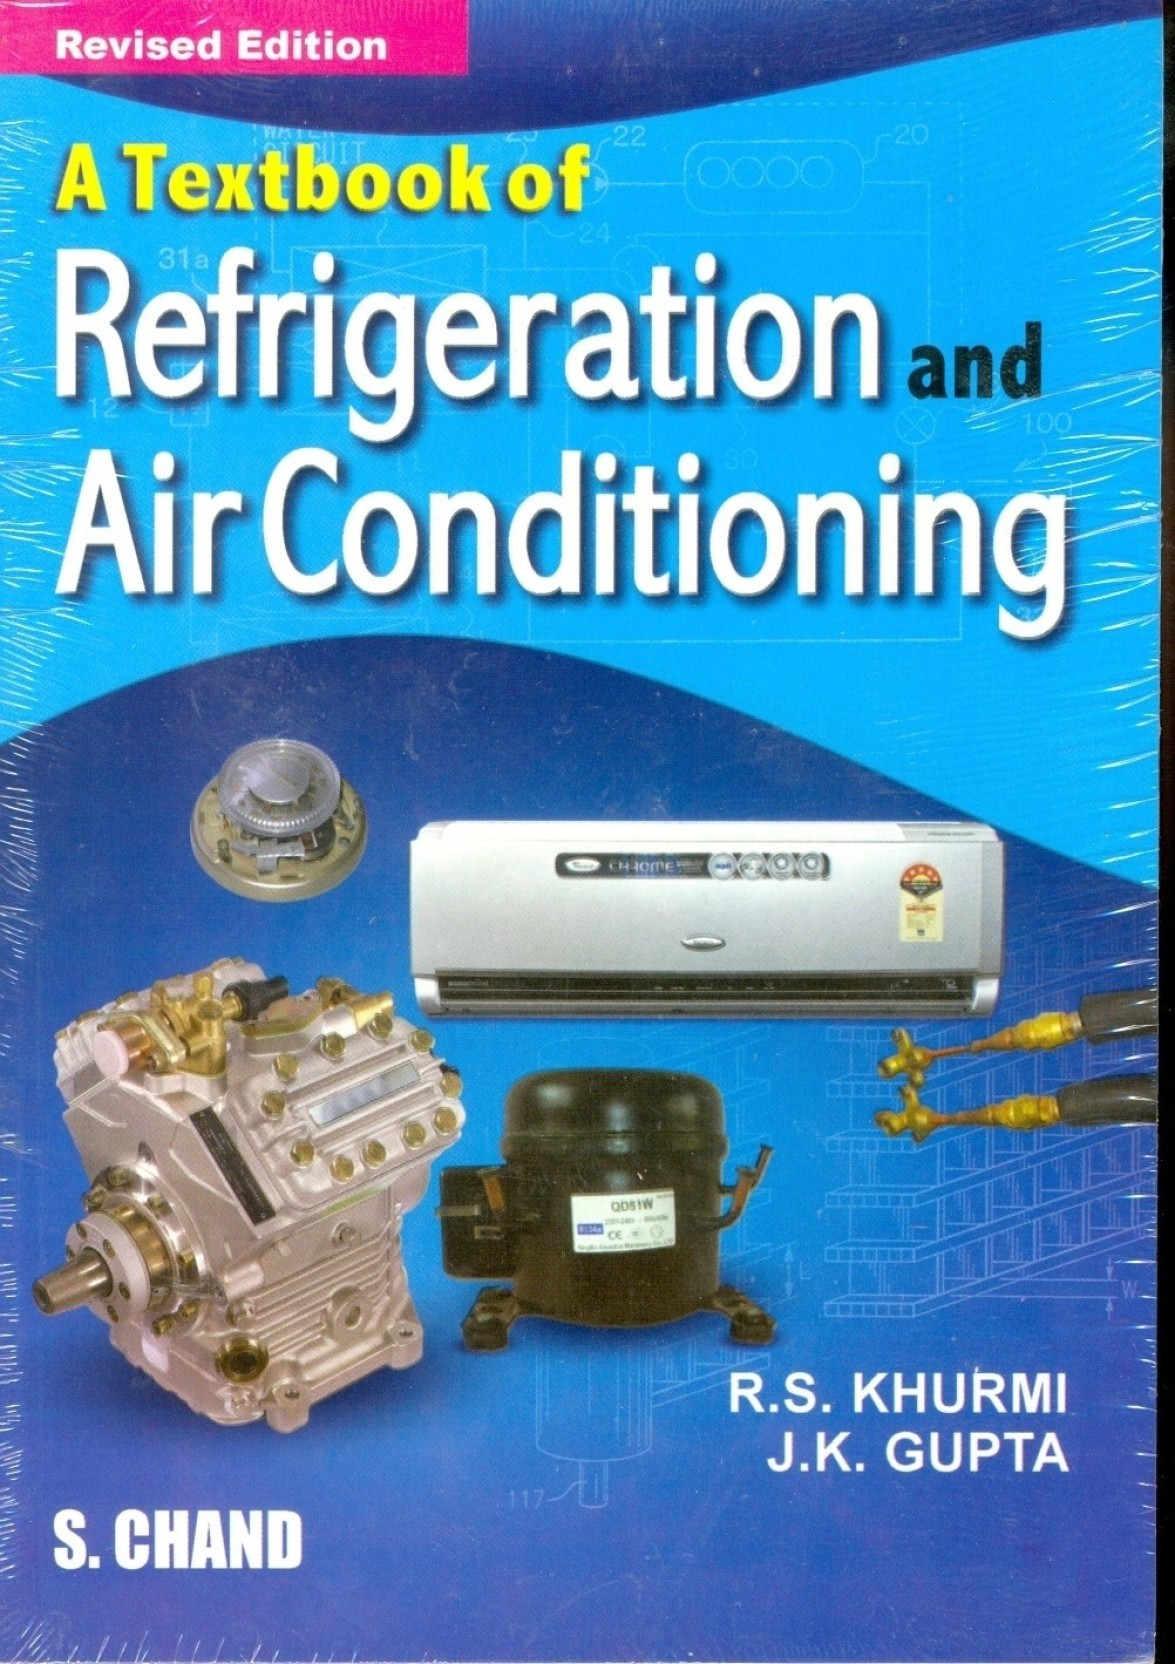 Textbook Of Refrigeration And Air Conditioning Buy Electrical Engineering In Add To Cart